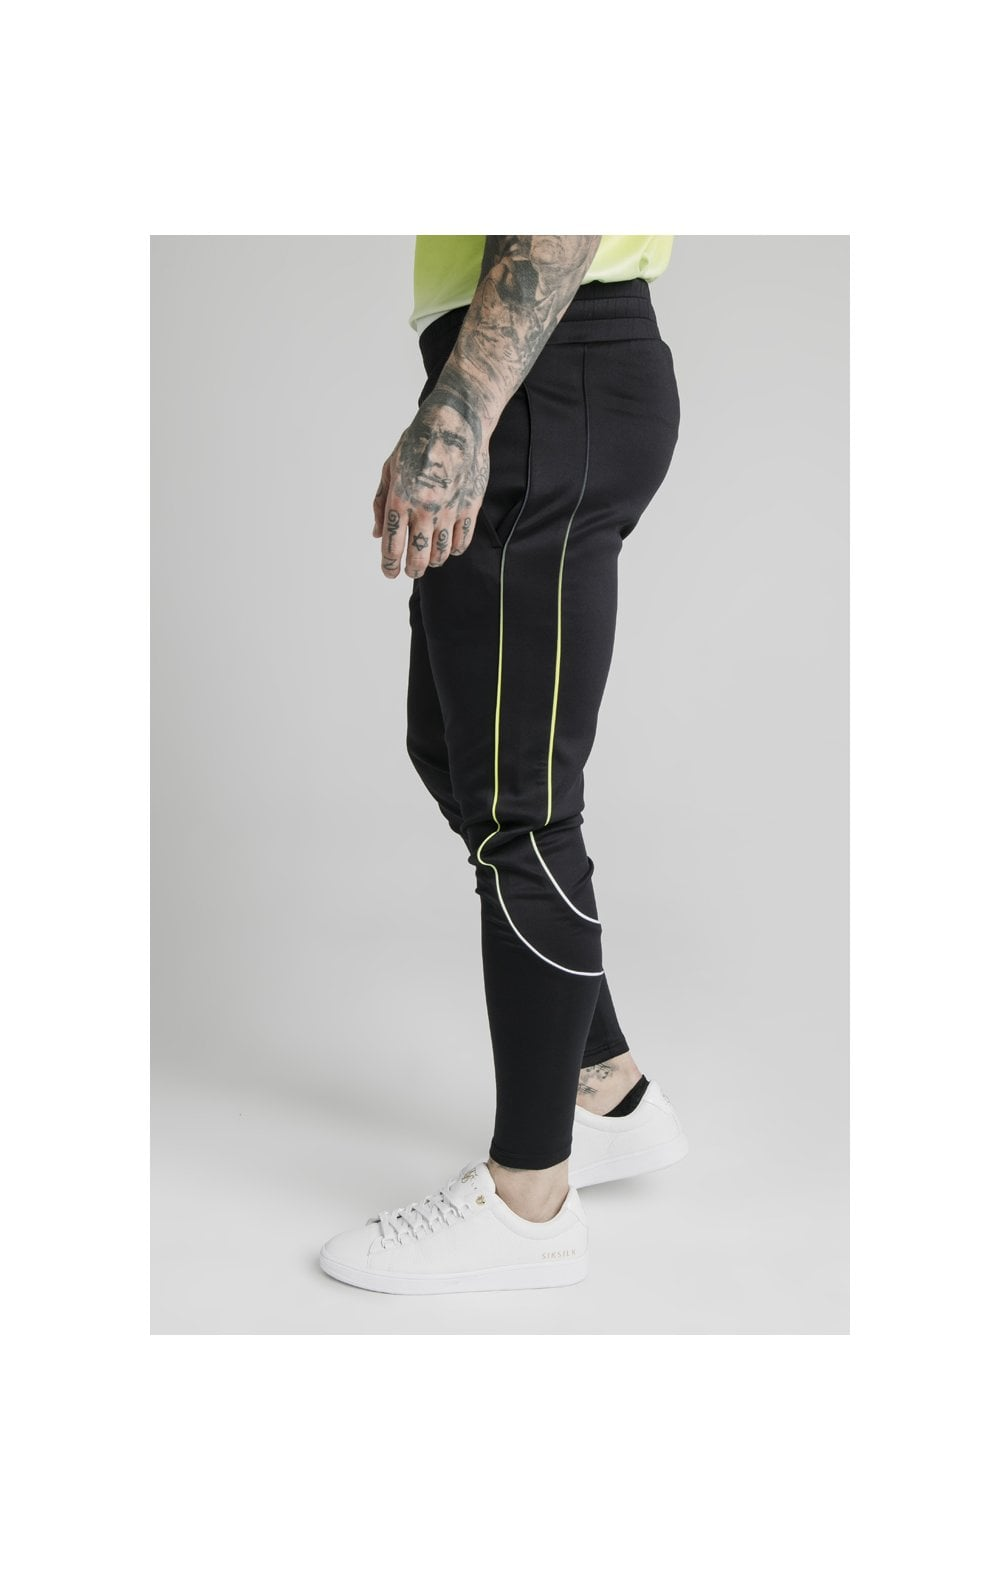 Load image into Gallery viewer, SikSilk Tri Fade Tape Track Pants - Black, Fluro & White (1)